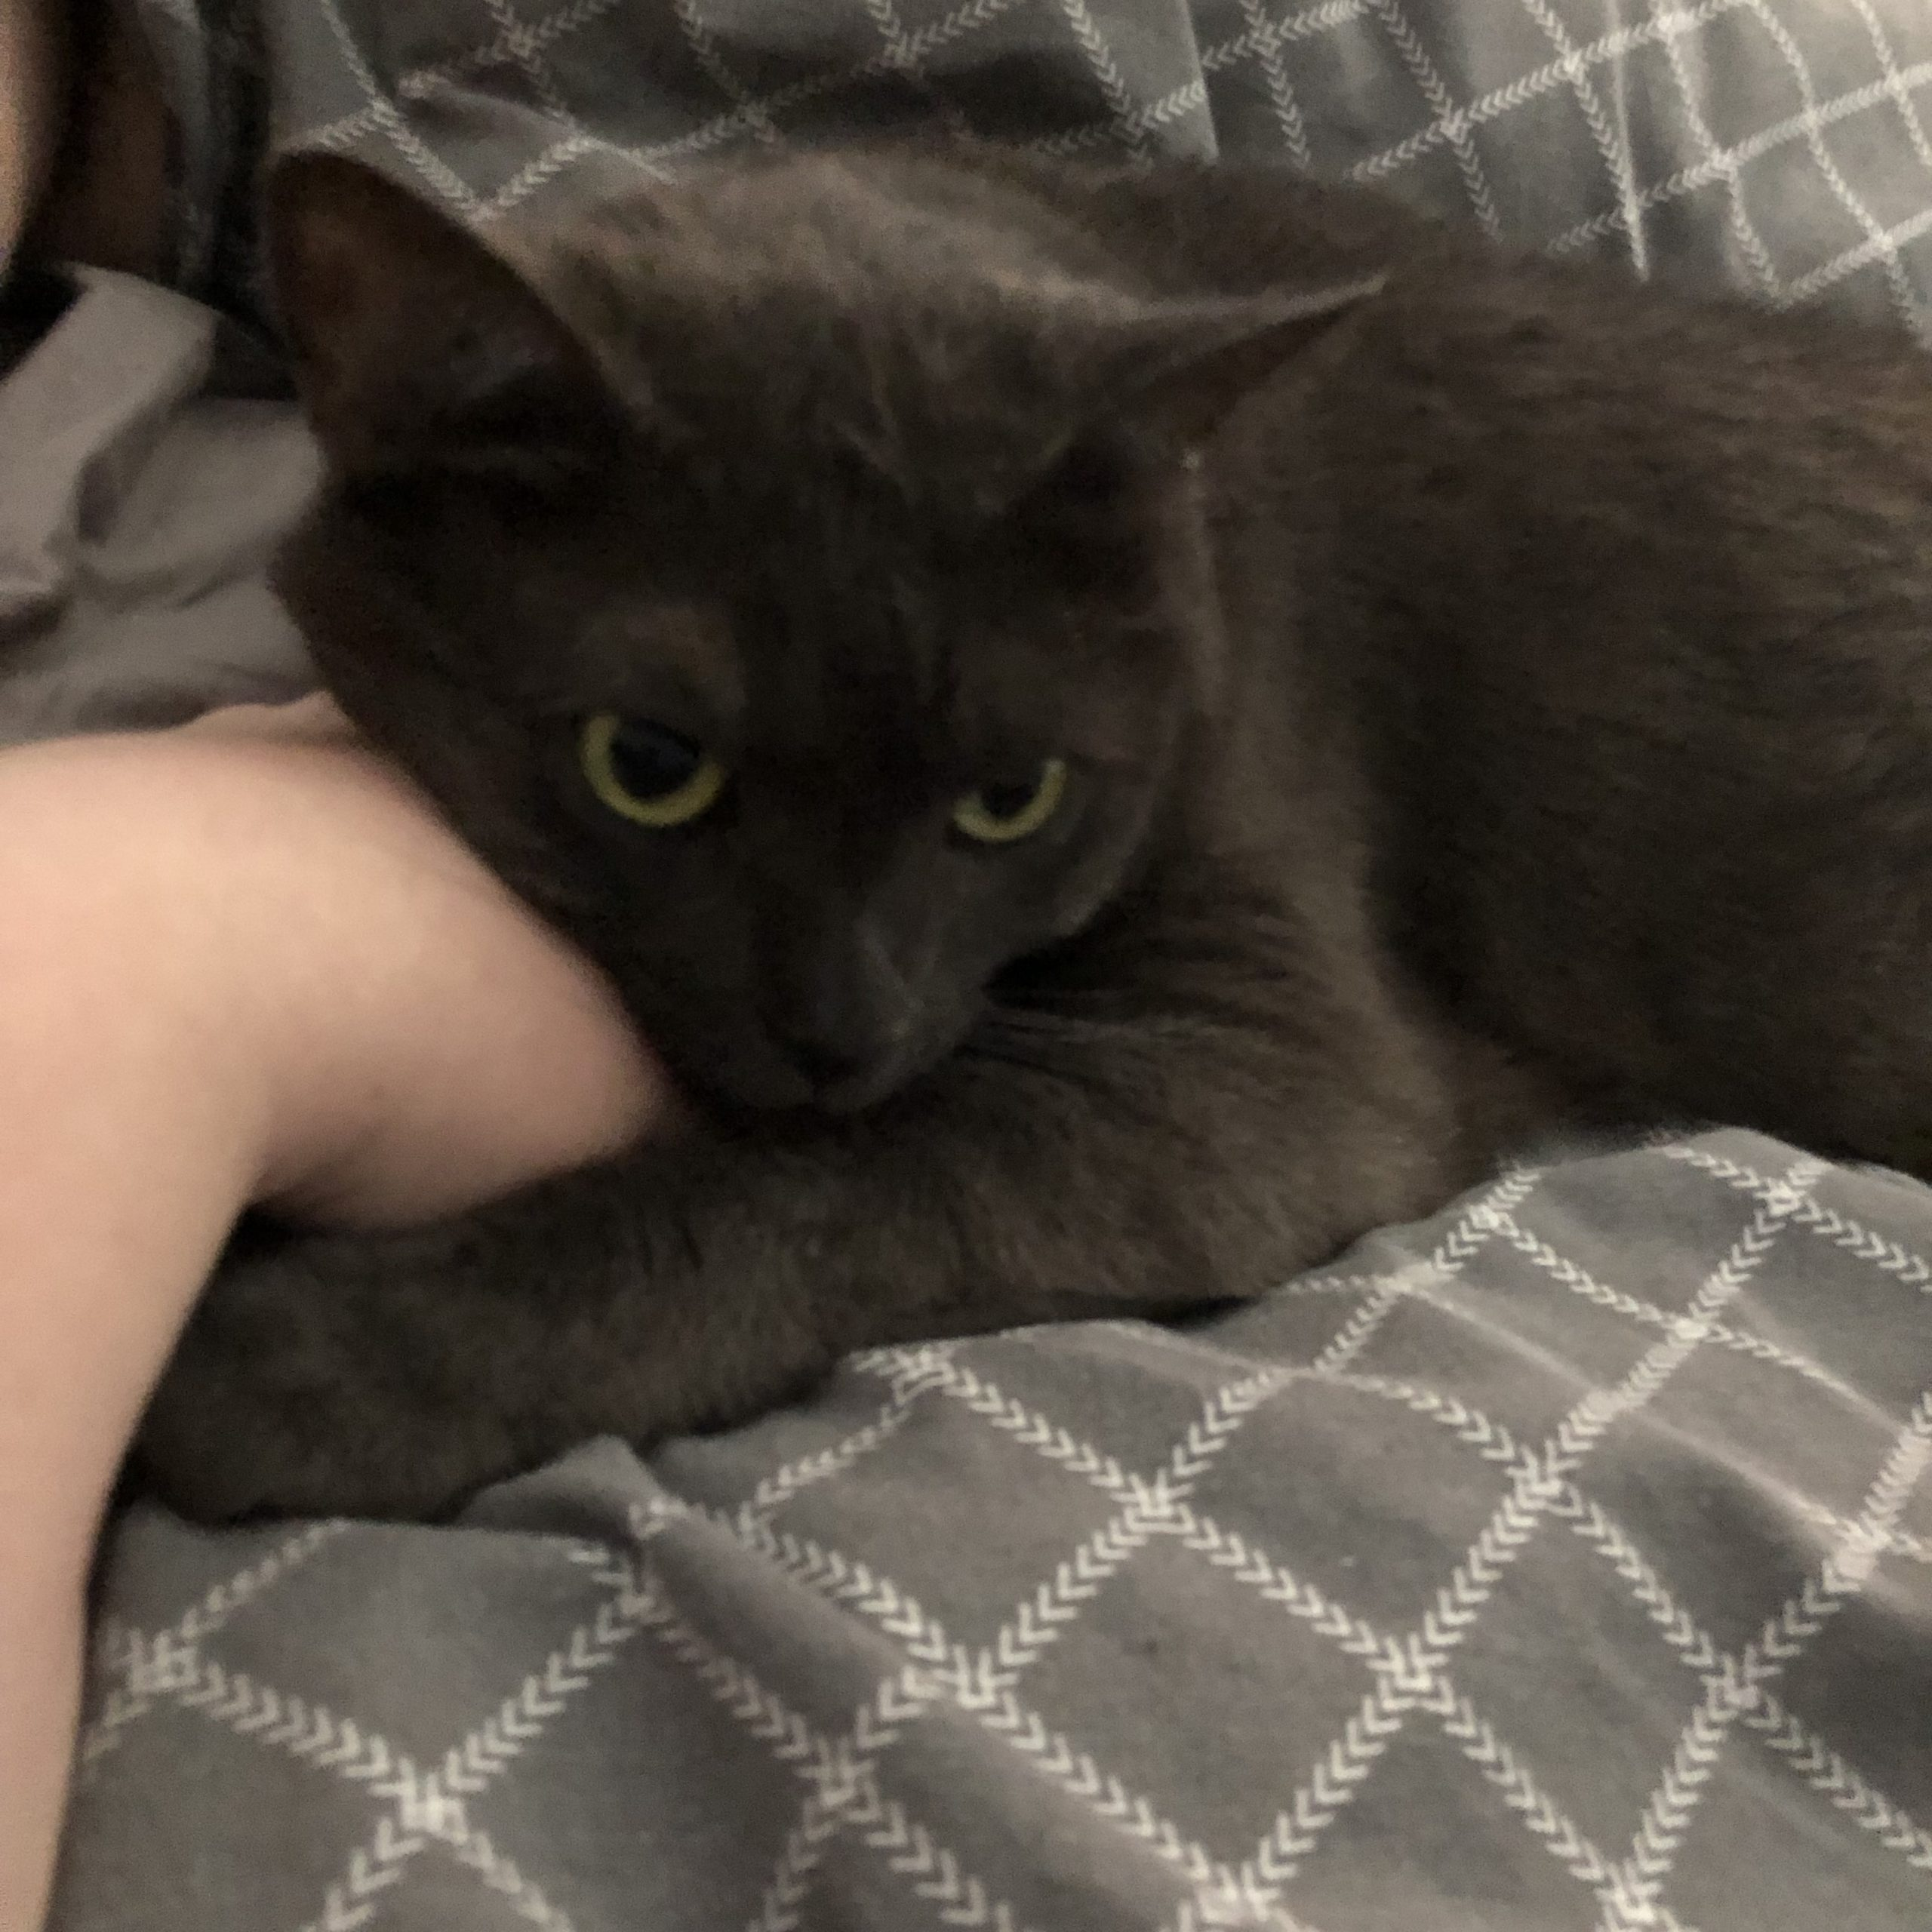 A photo of cat hugging my hand